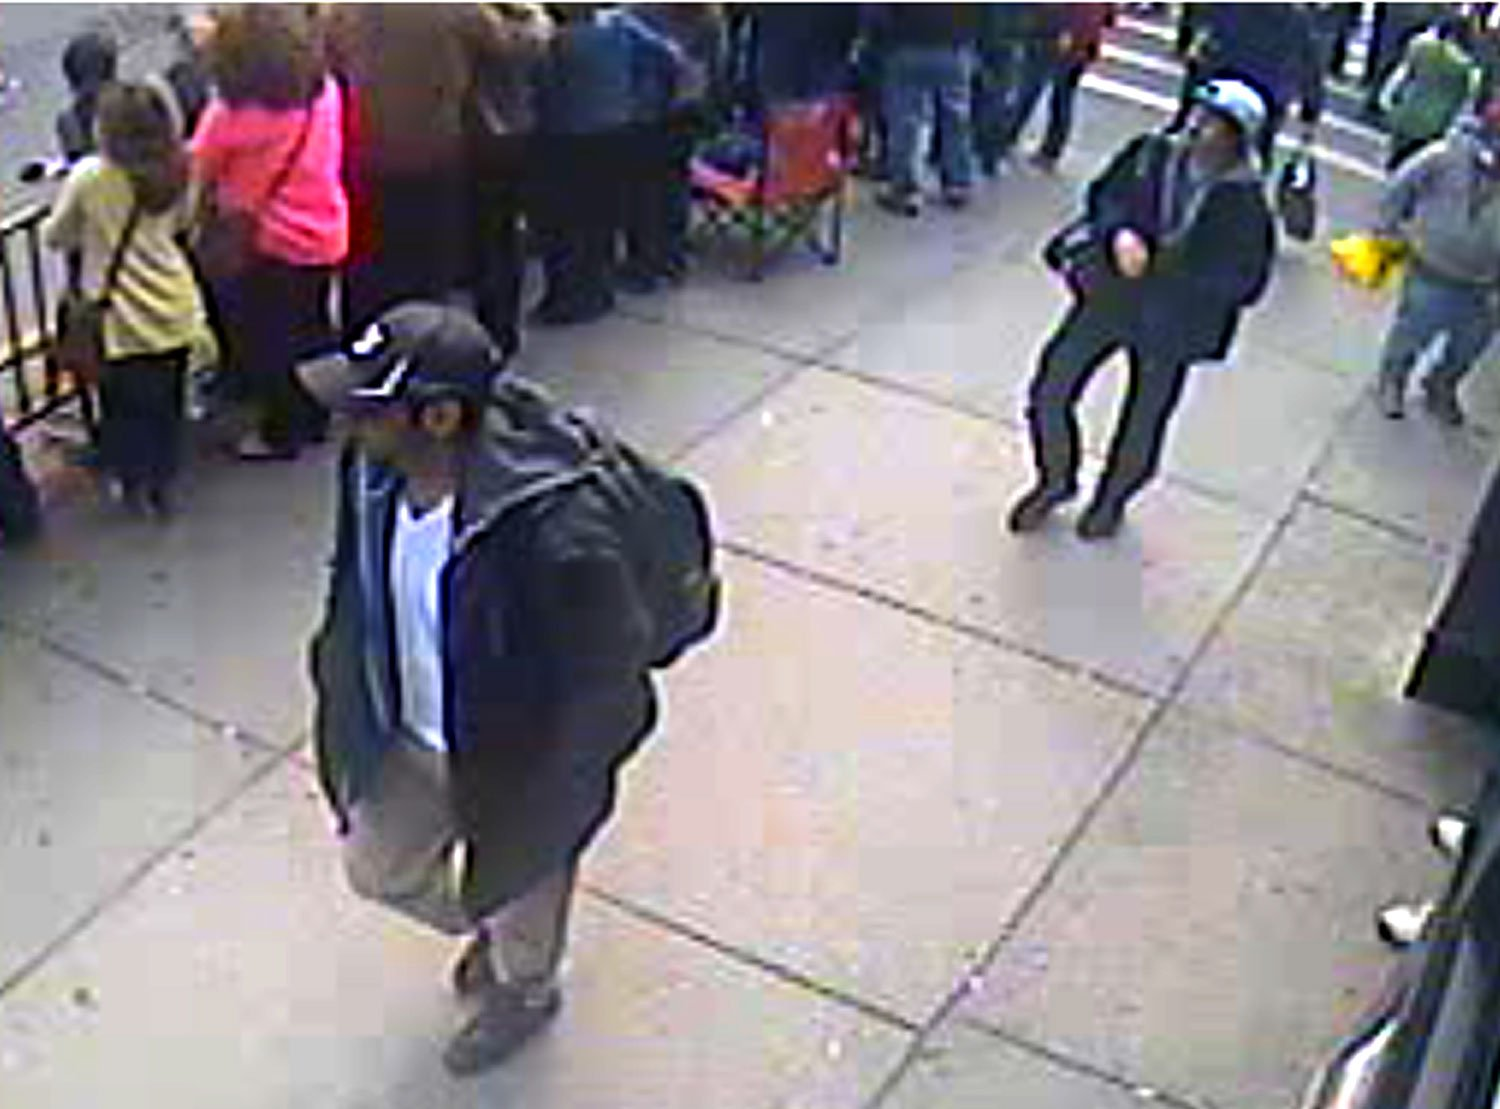 FBI released photo of the two individuals, identified as Suspect 1 and Suspect 2, wanted for questioning in the Boston bombings.